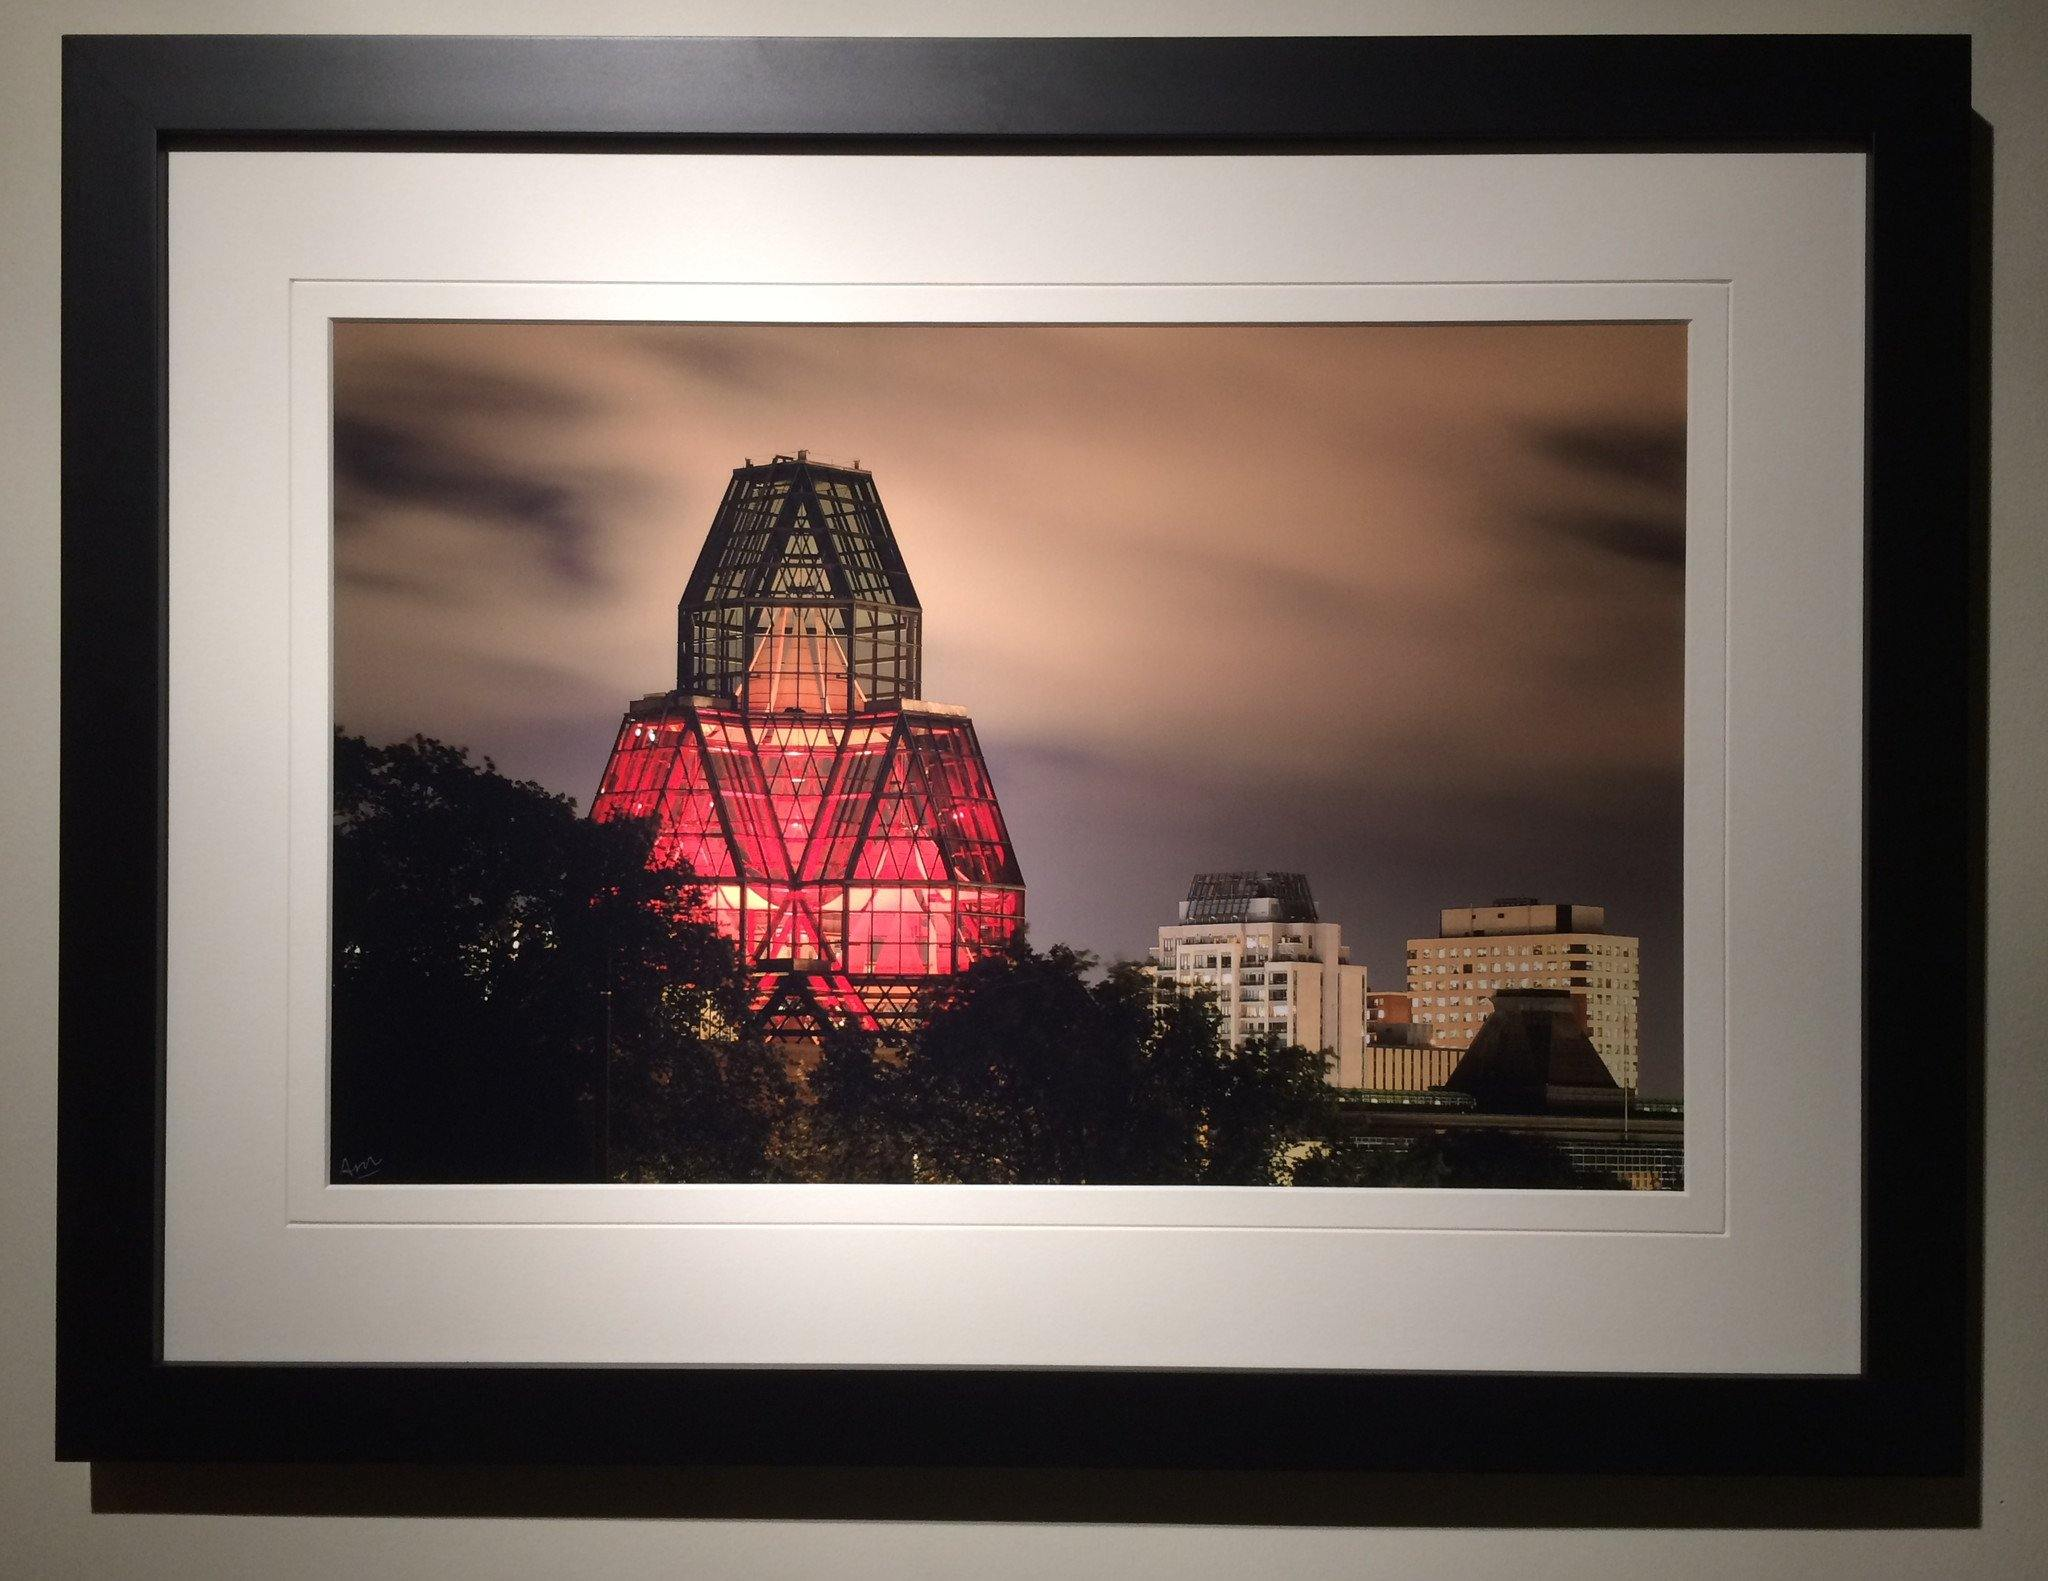 National Gallery - framed - Andrew Moor Photography